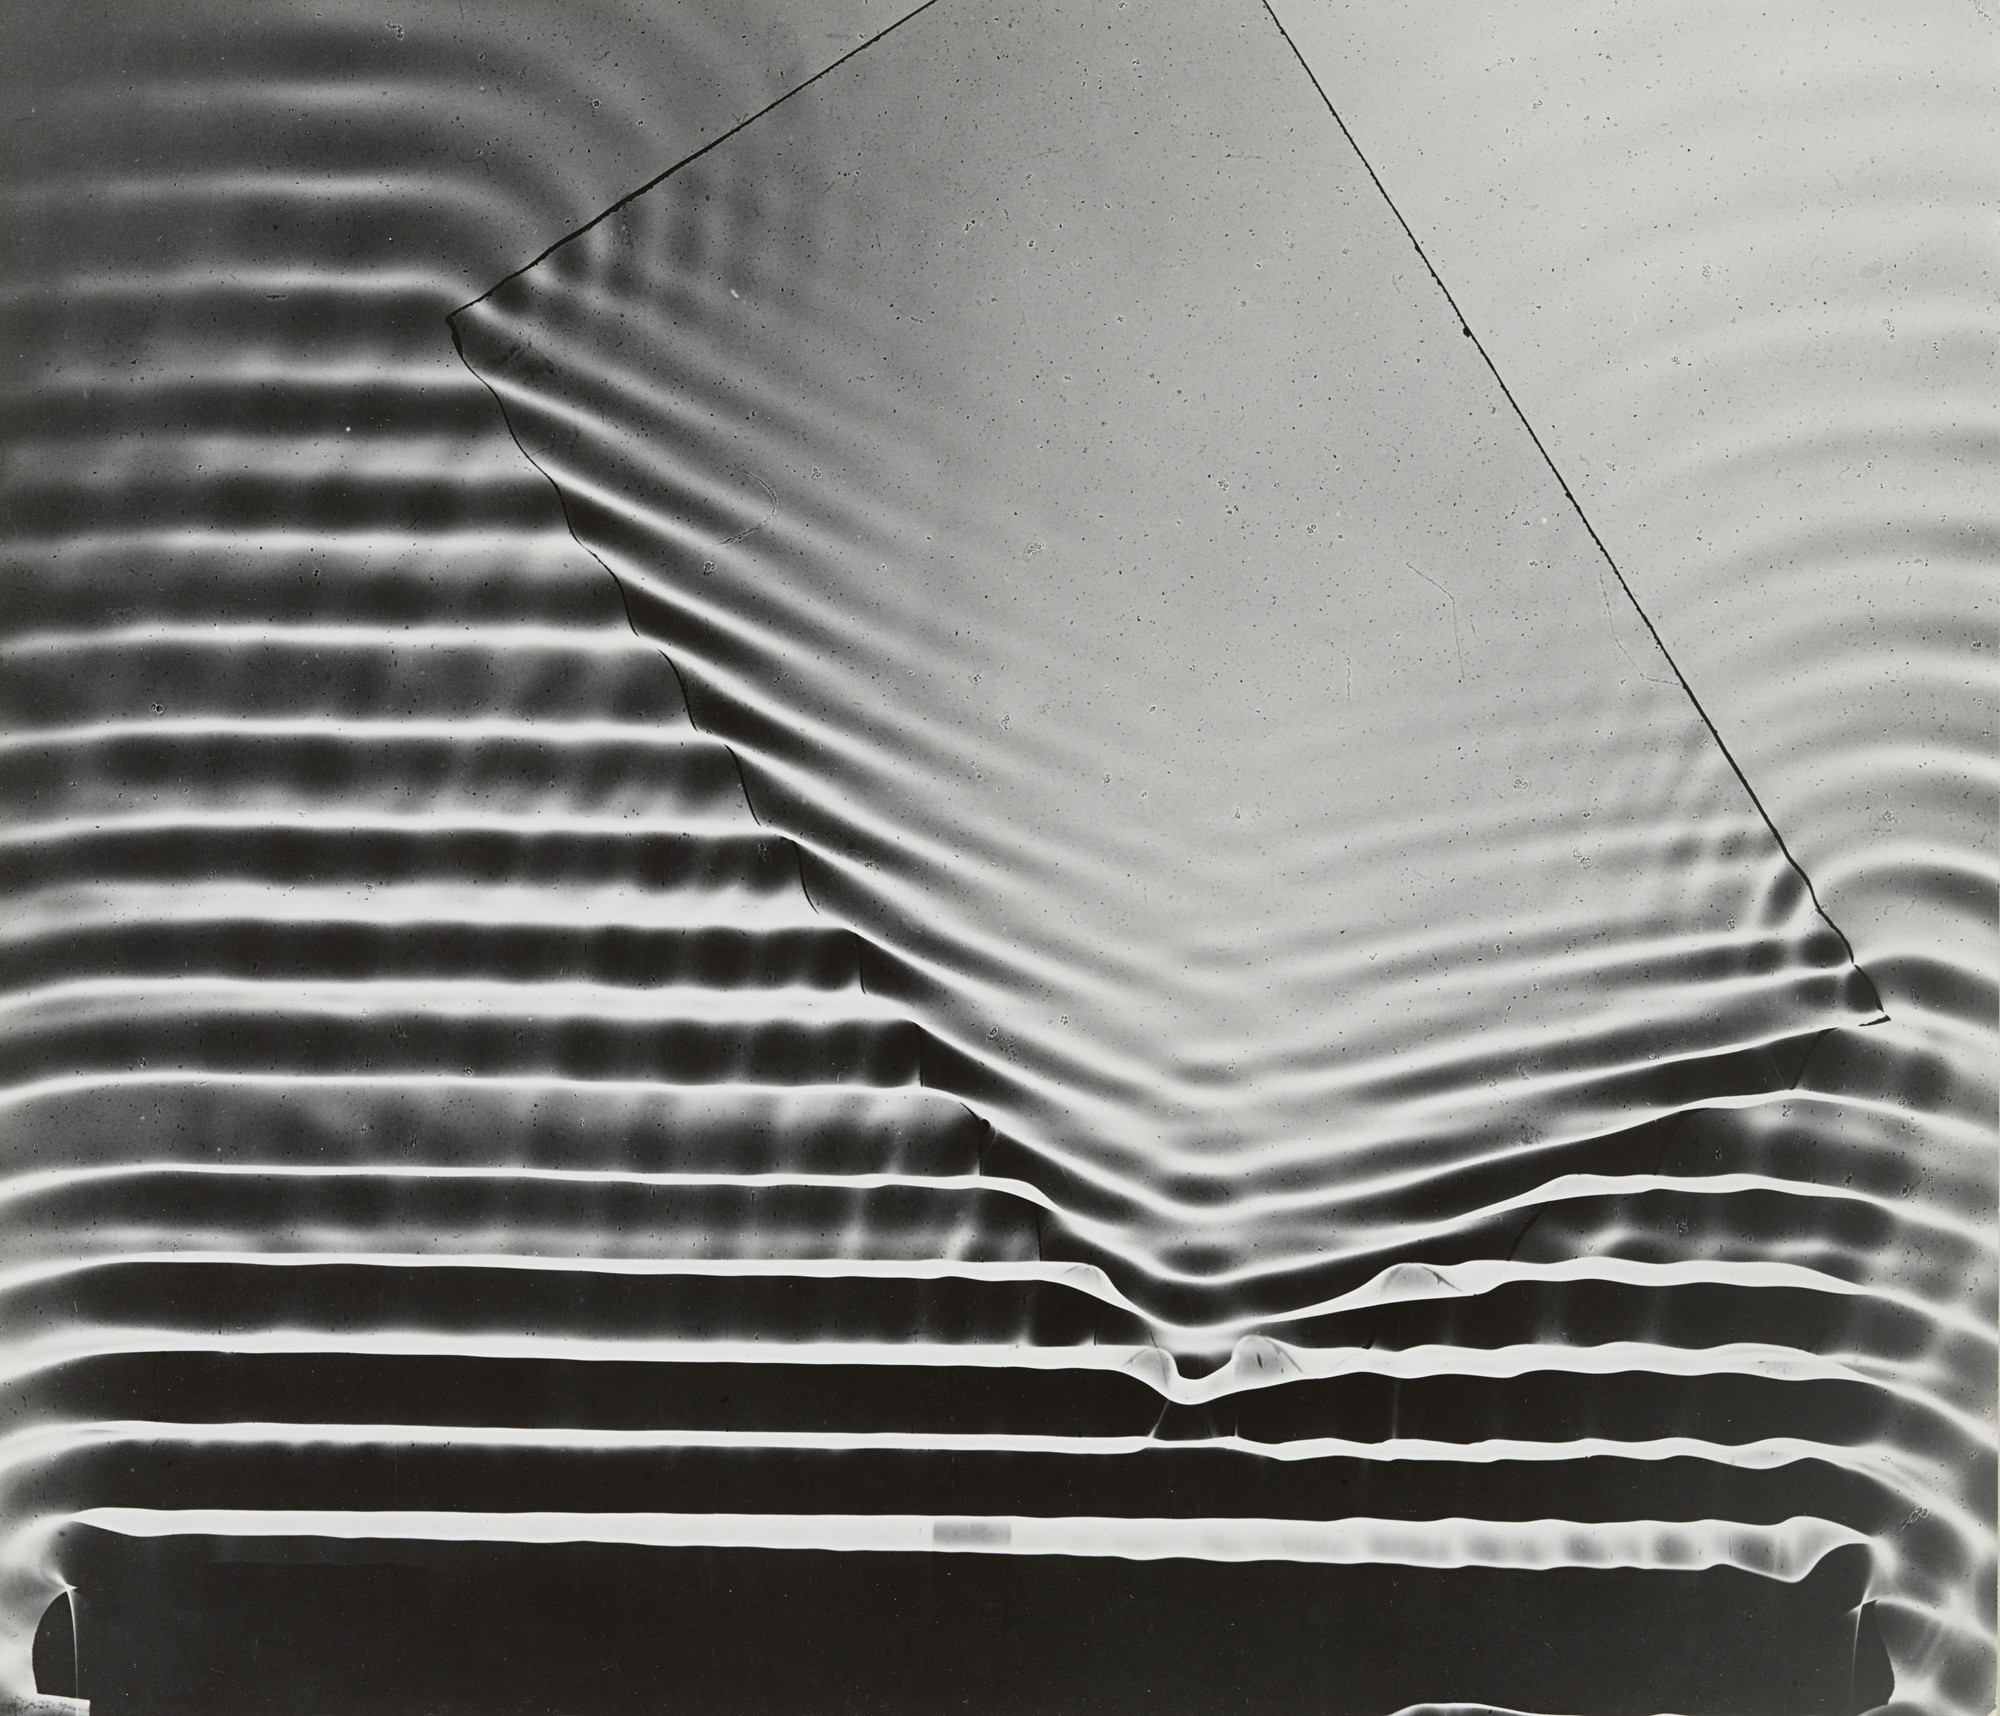 Berenice Abbott. Wave Pattern with Glass Plate, Massachusetts Institute of Technology. 1958-61